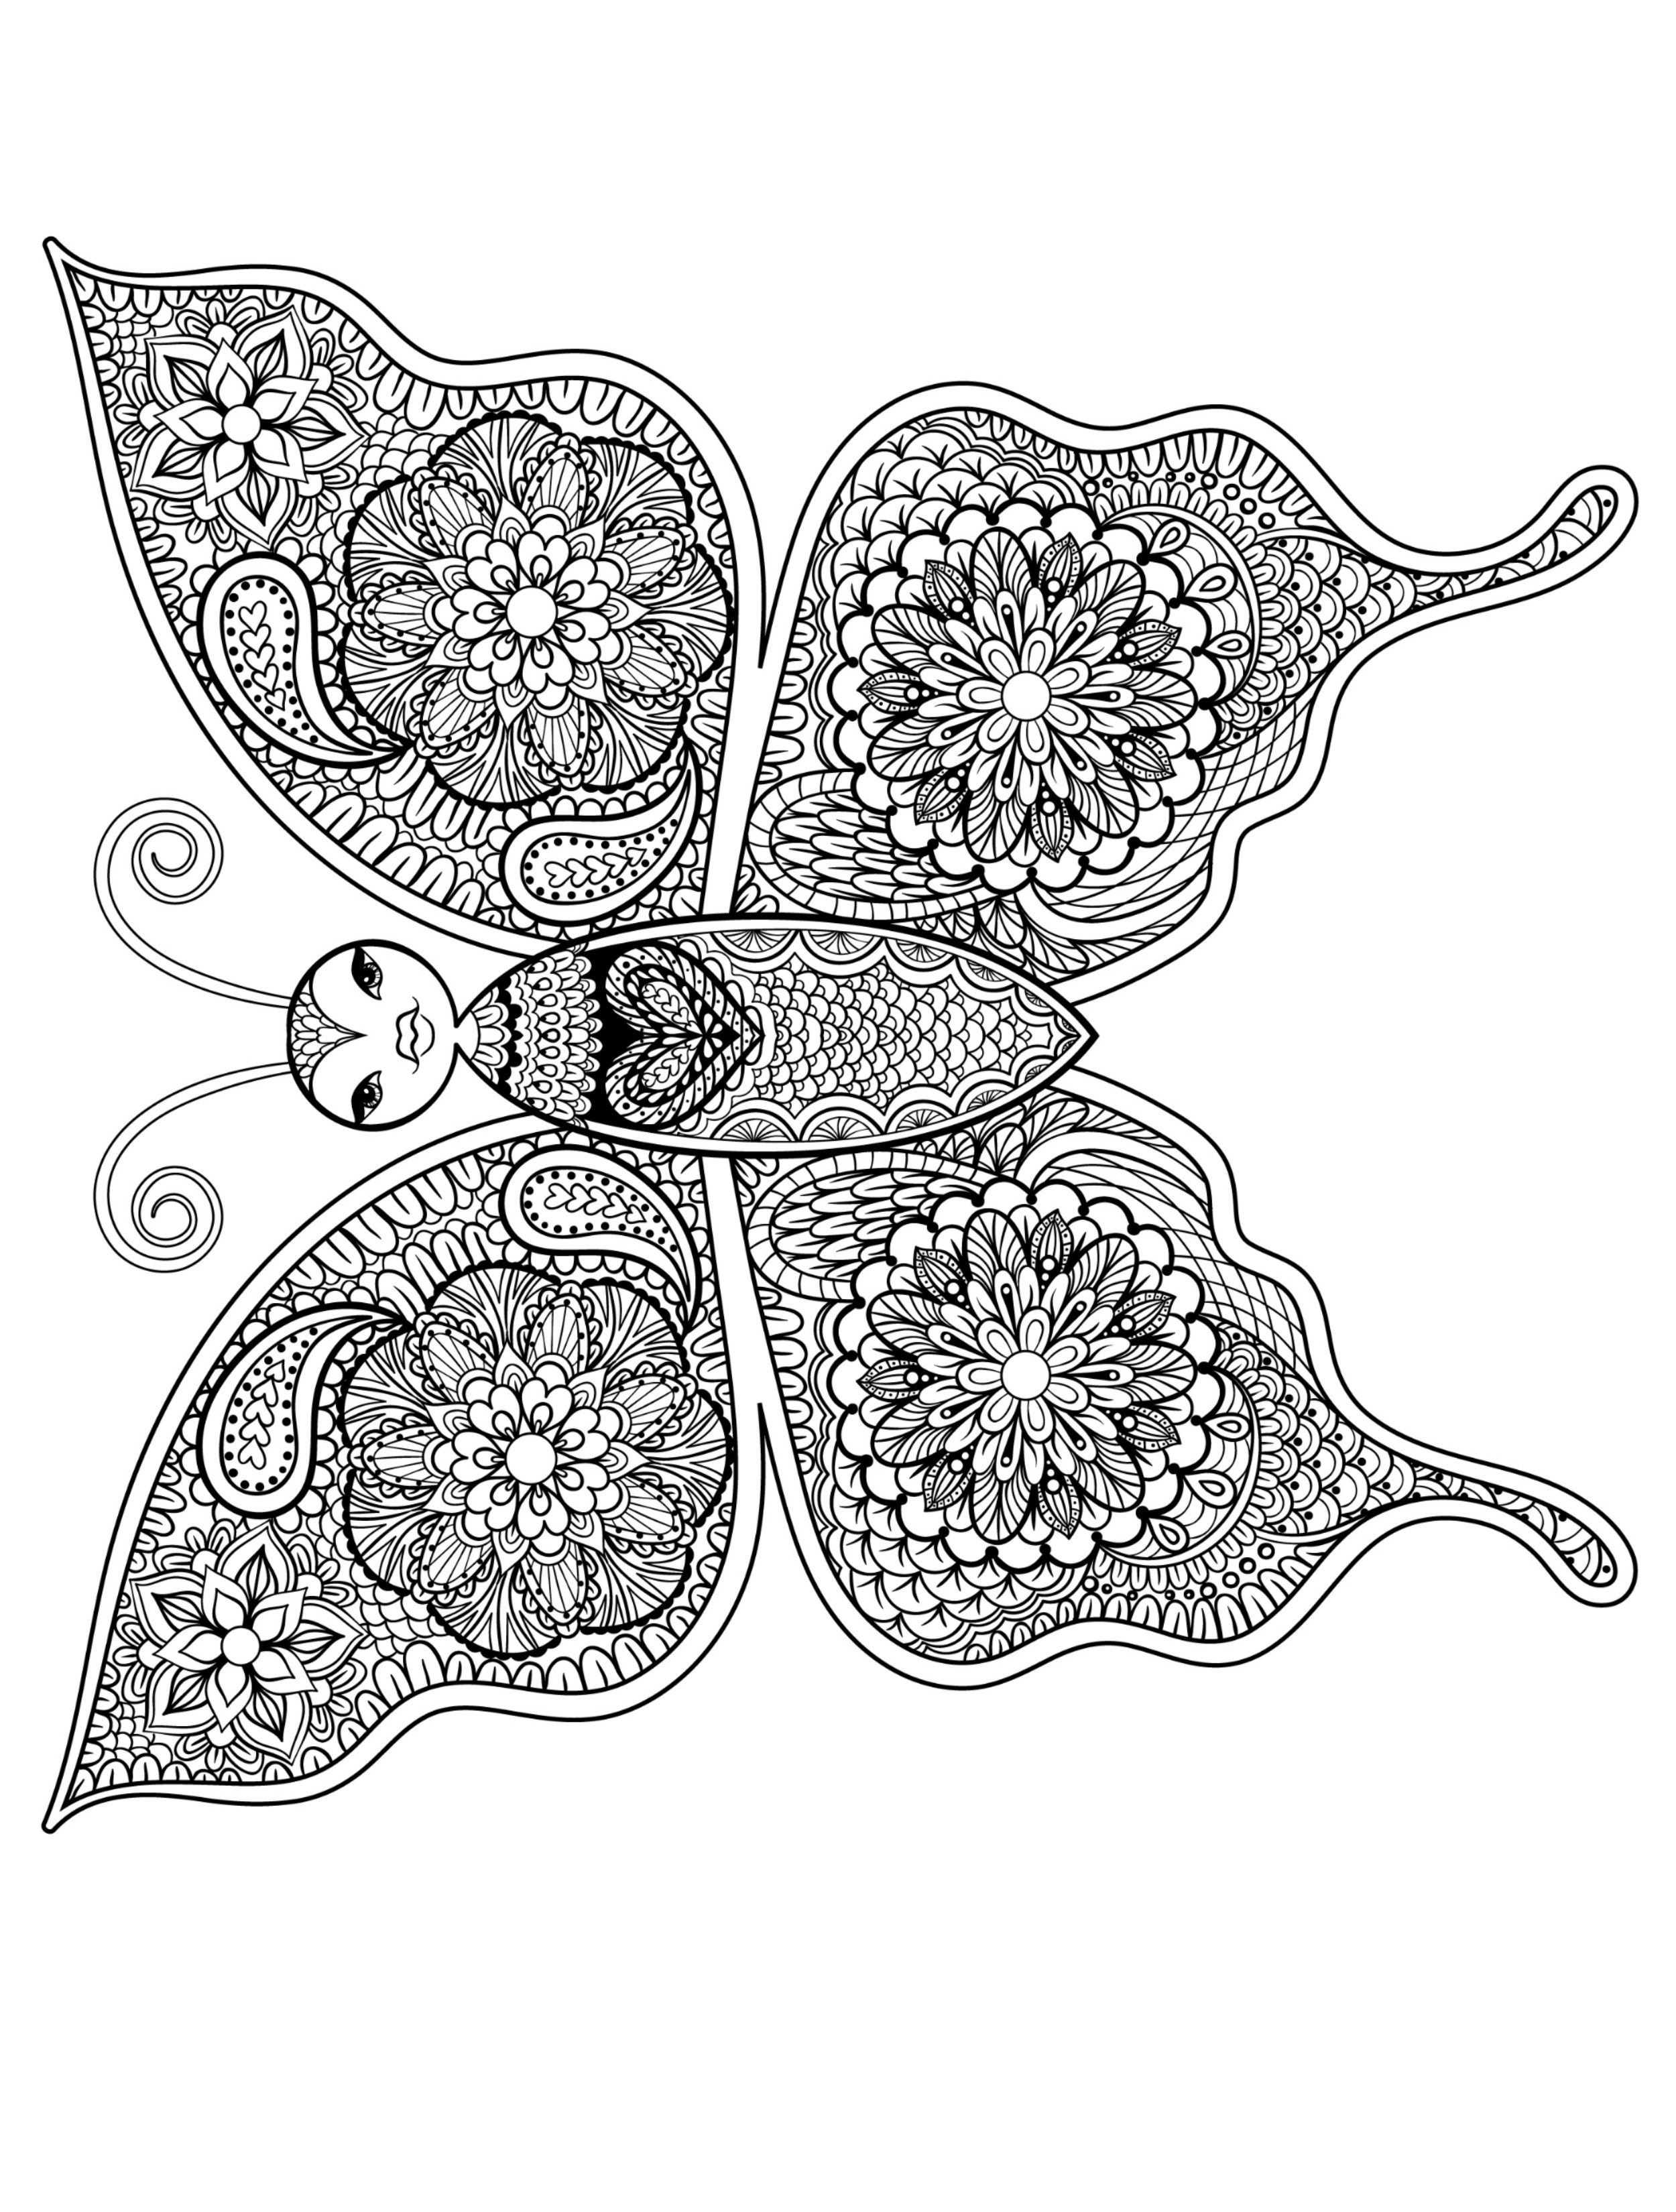 23 Free Printable Insect Animal Adult Coloring Pages Butterflies